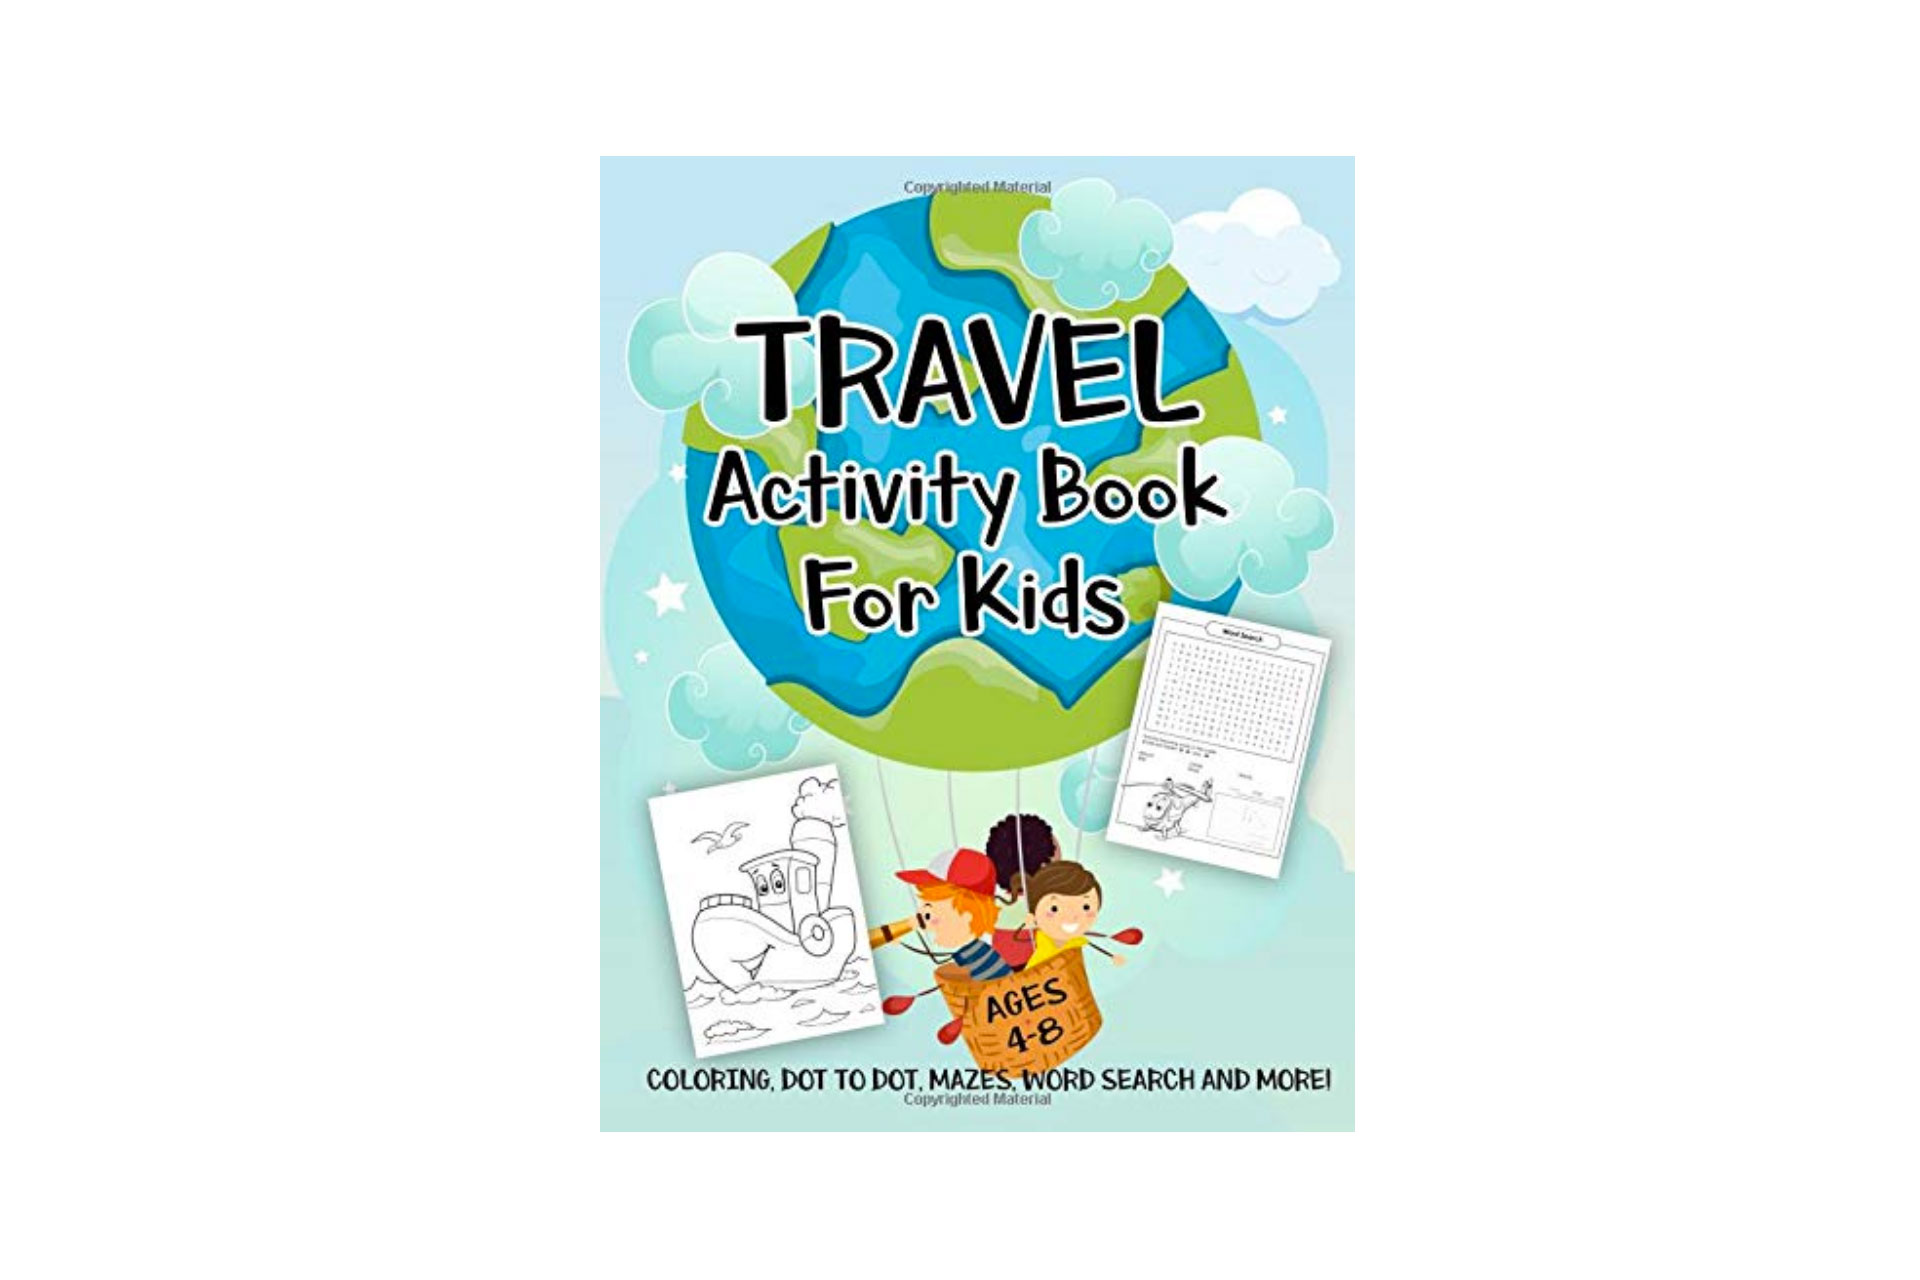 Travel Activity Book for Kids; Courtesy of Amazon